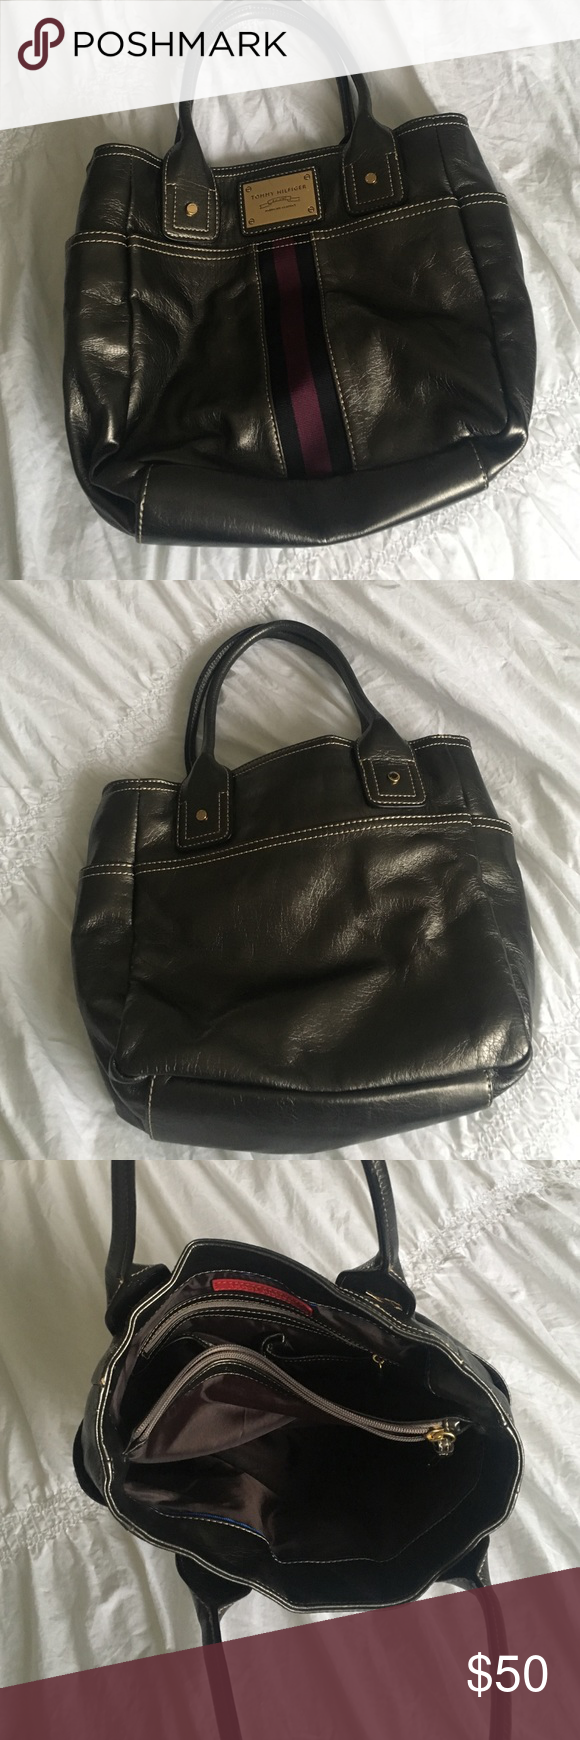 Tommy Hilfiger purse Tommy Hilfiger purse like new Tommy Hilfiger Bags Totes